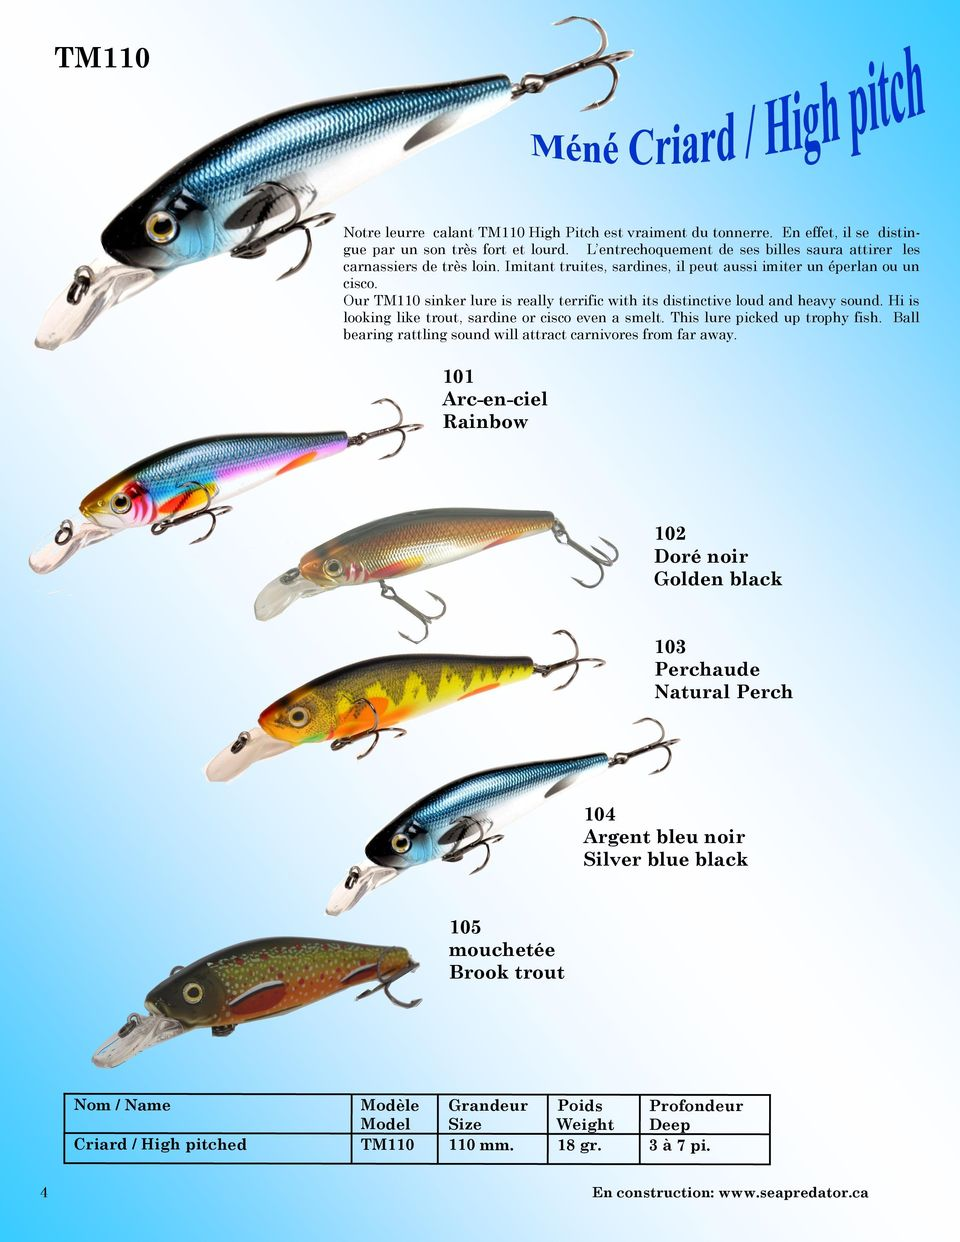 Our TM110 sinker lure is really terrific with its distinctive loud and heavy sound. Hi is looking like trout, sardine or cisco even a smelt. This lure picked up trophy fish.